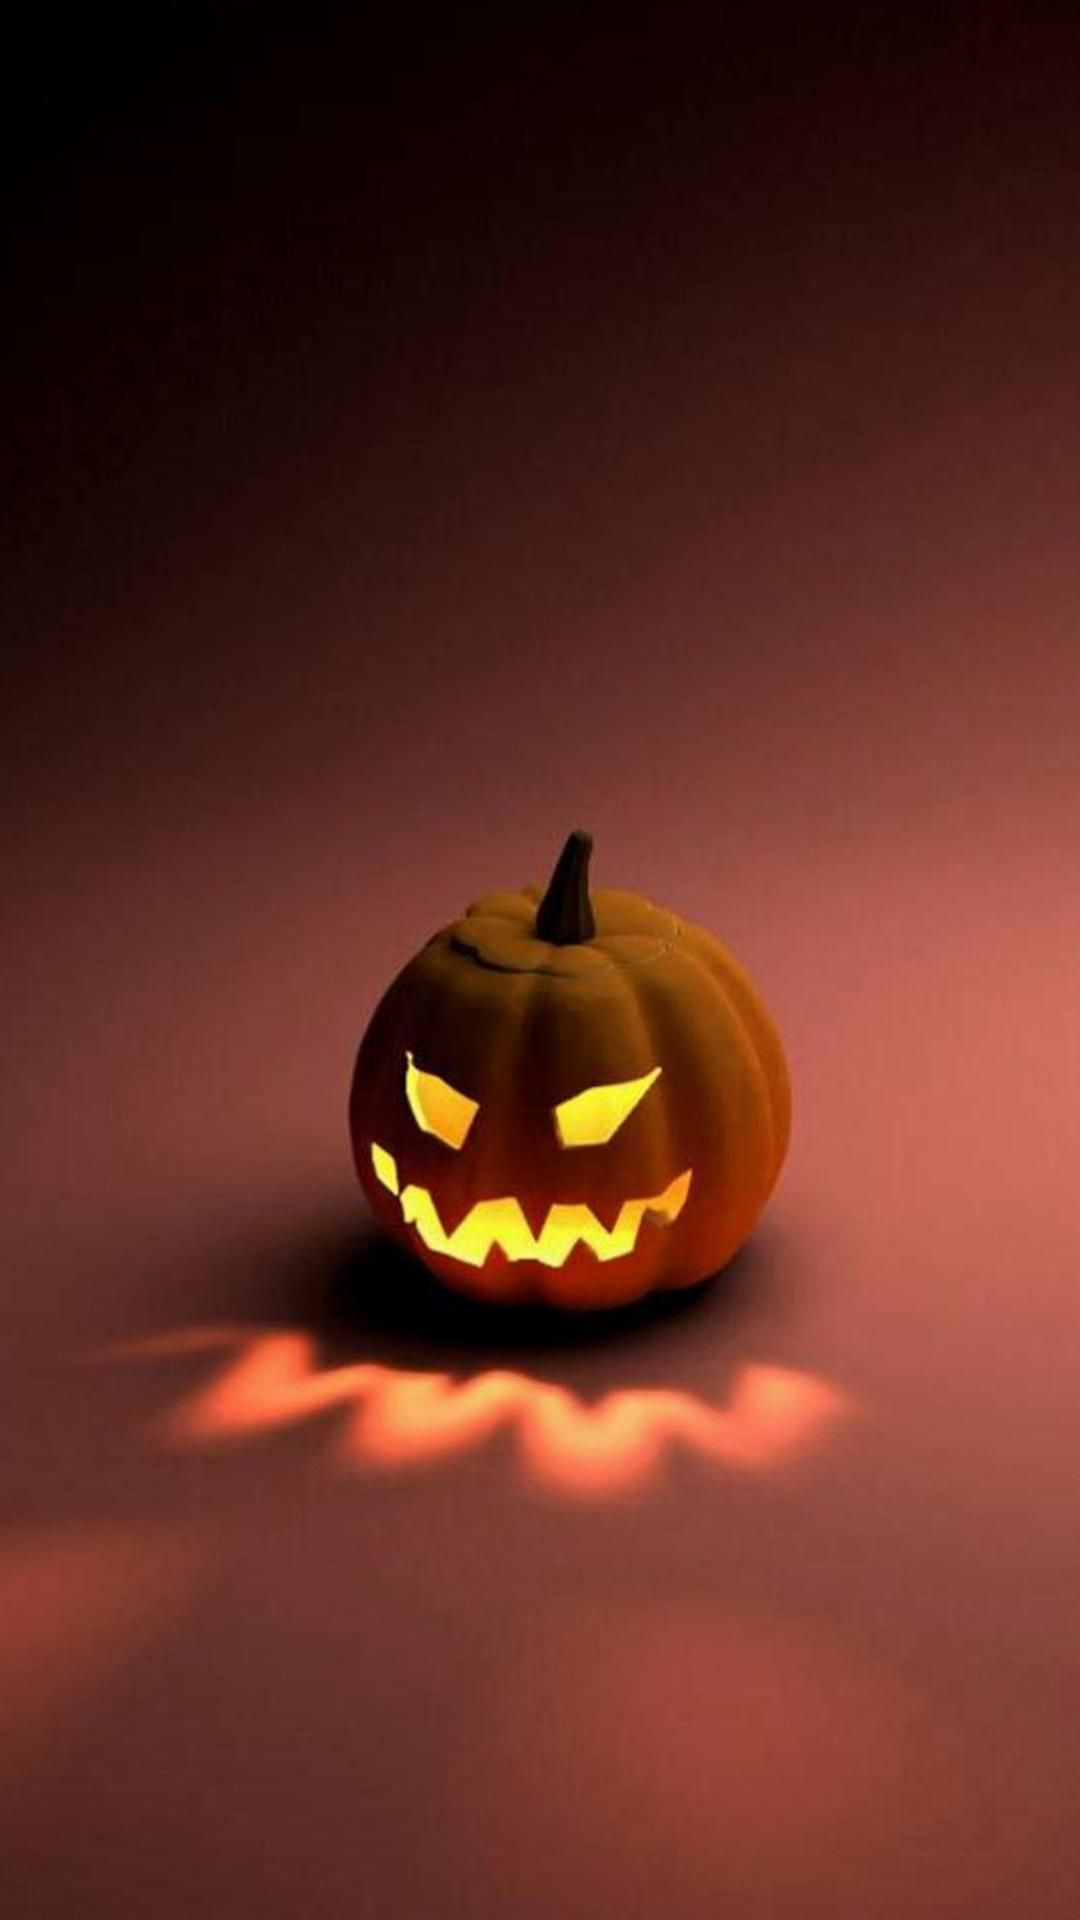 Pin By Theresa Griffin On Halloween Wallpaper Halloween Wallpaper Iphone Halloween Wallpaper Iphone 7 Wallpapers